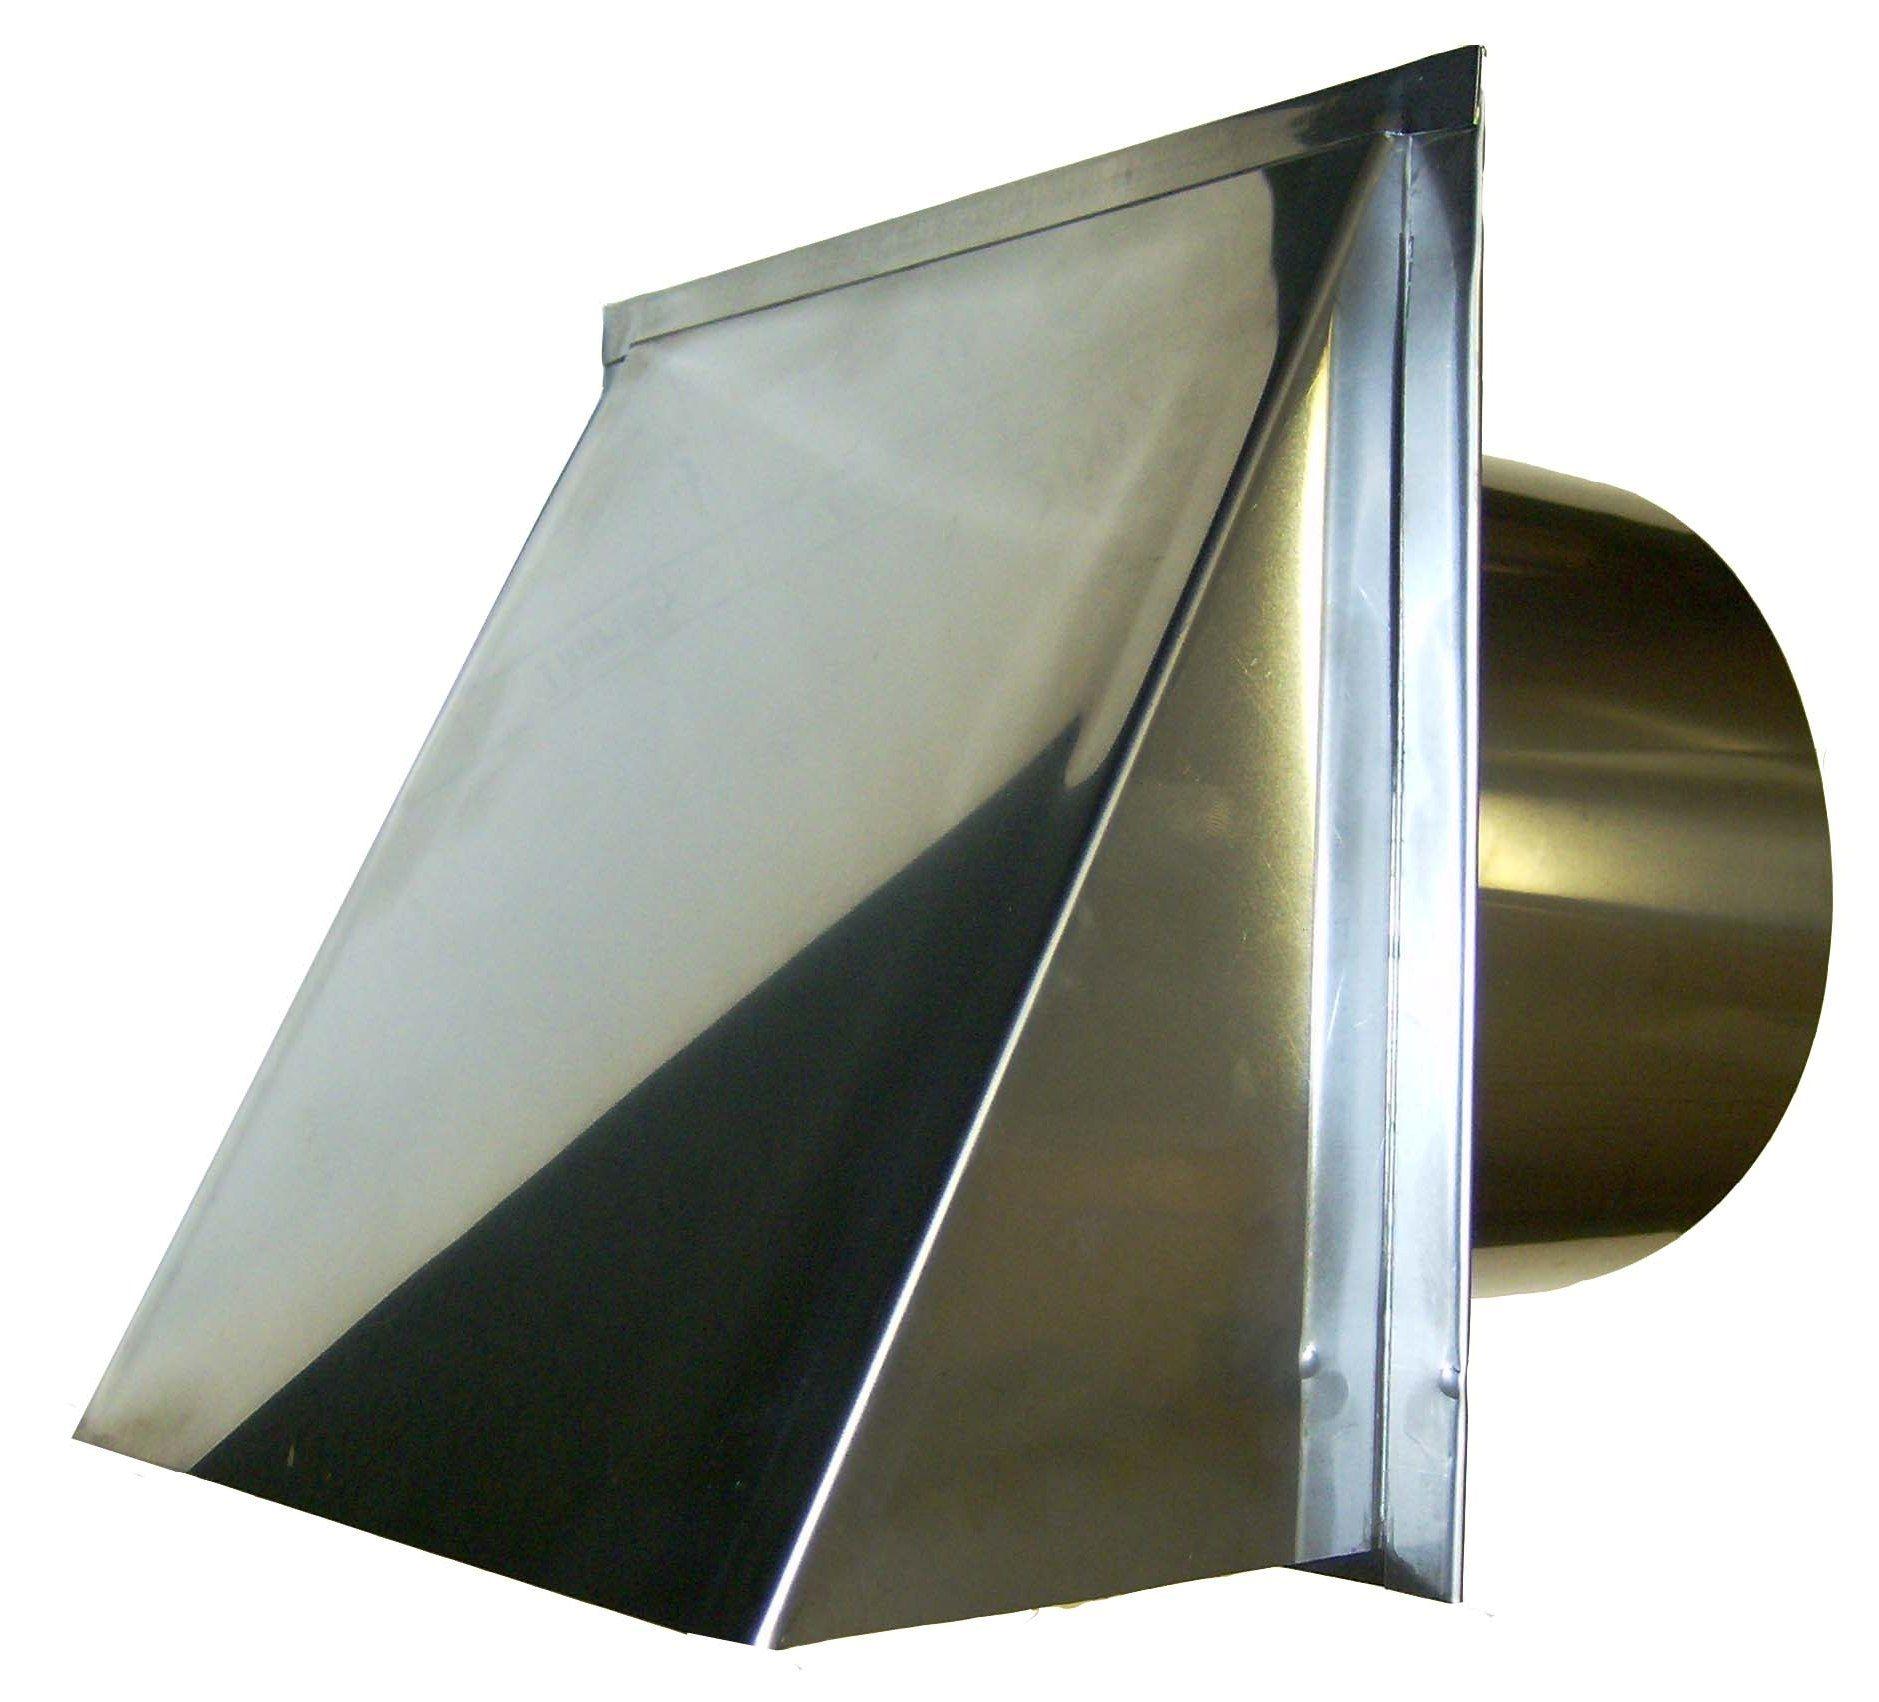 Stainless Steel Kitchen Exhaust Fan Cover